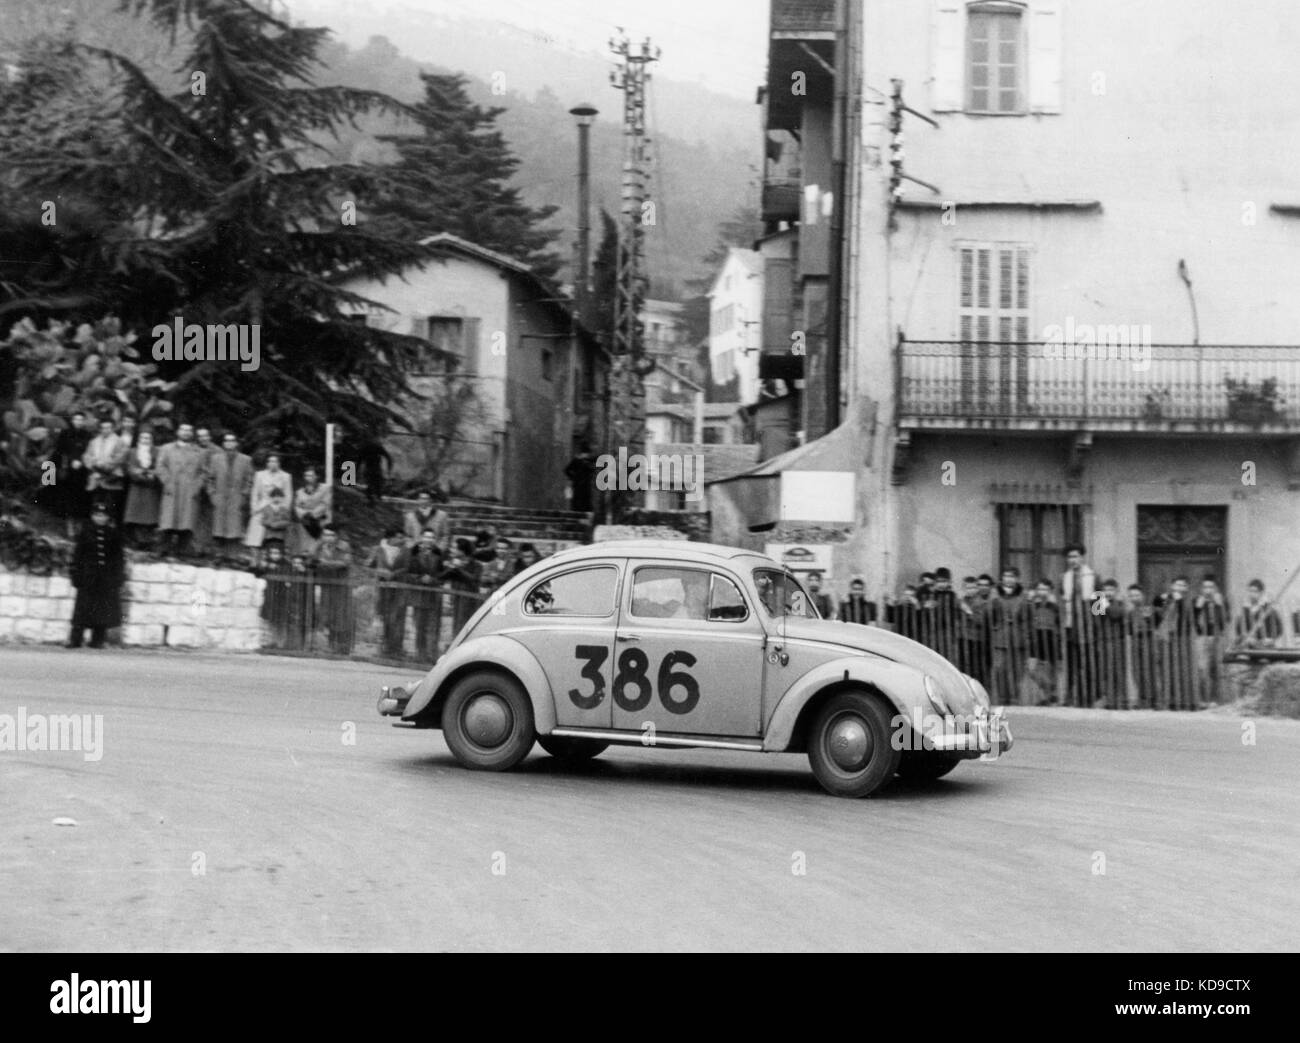 VW Beetle in 1954 Monte Carlo Rally - Stock Image